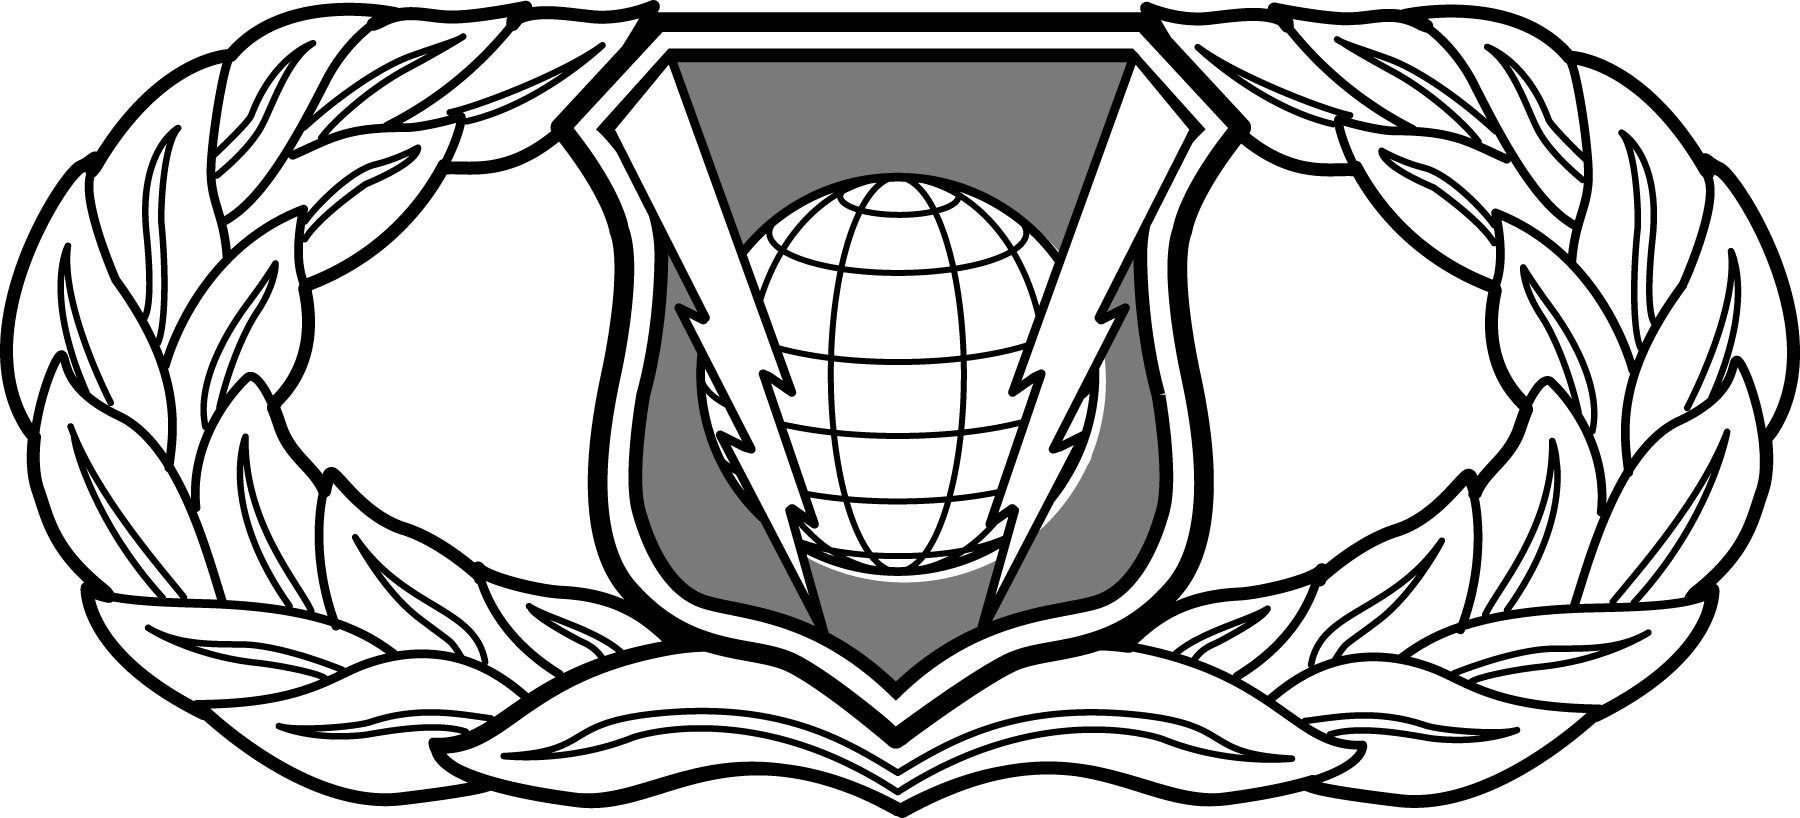 Command And Control Badge